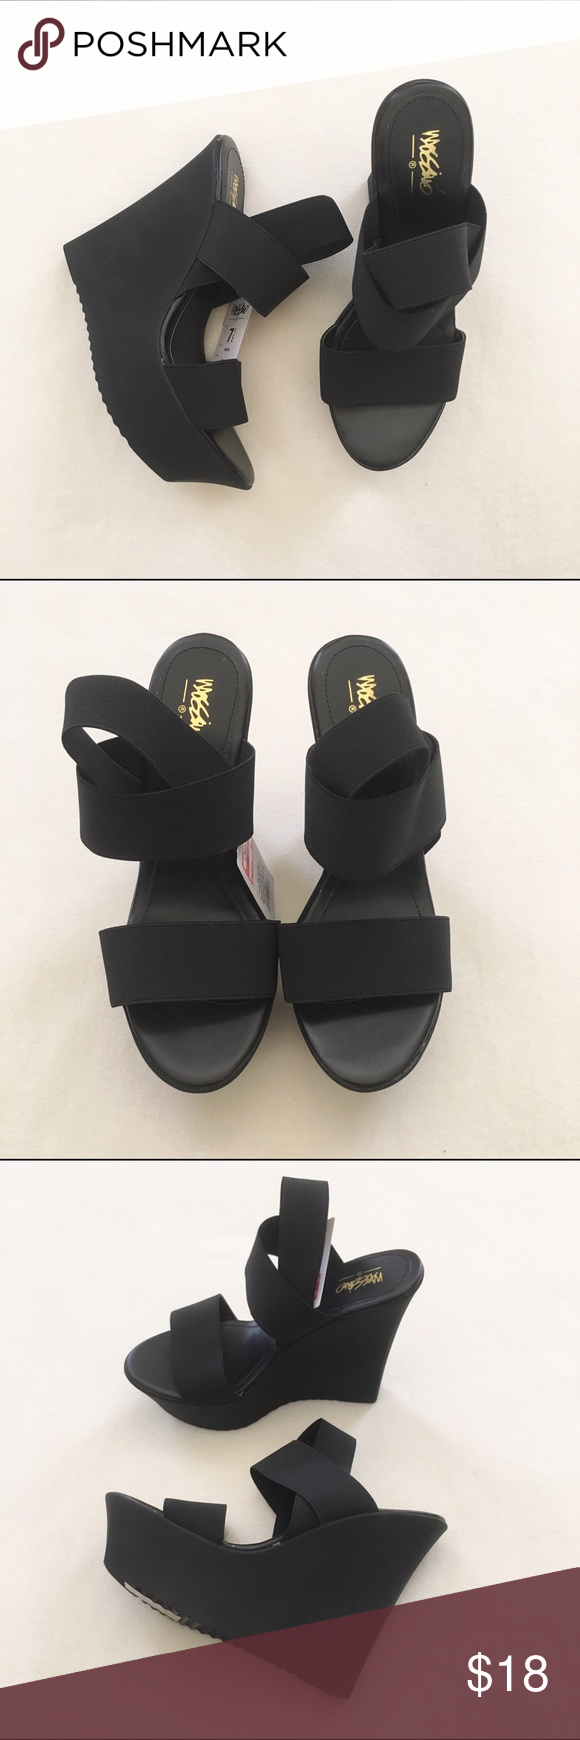 NWT Chunky Heels All sales will go towards my medical school tuition :)  Bundle for additional discounts. Reasonable offers are welcomed! LOW BALL OFFERS WILL BE IGNORED. Mossimo Supply Co Shoes Wedges